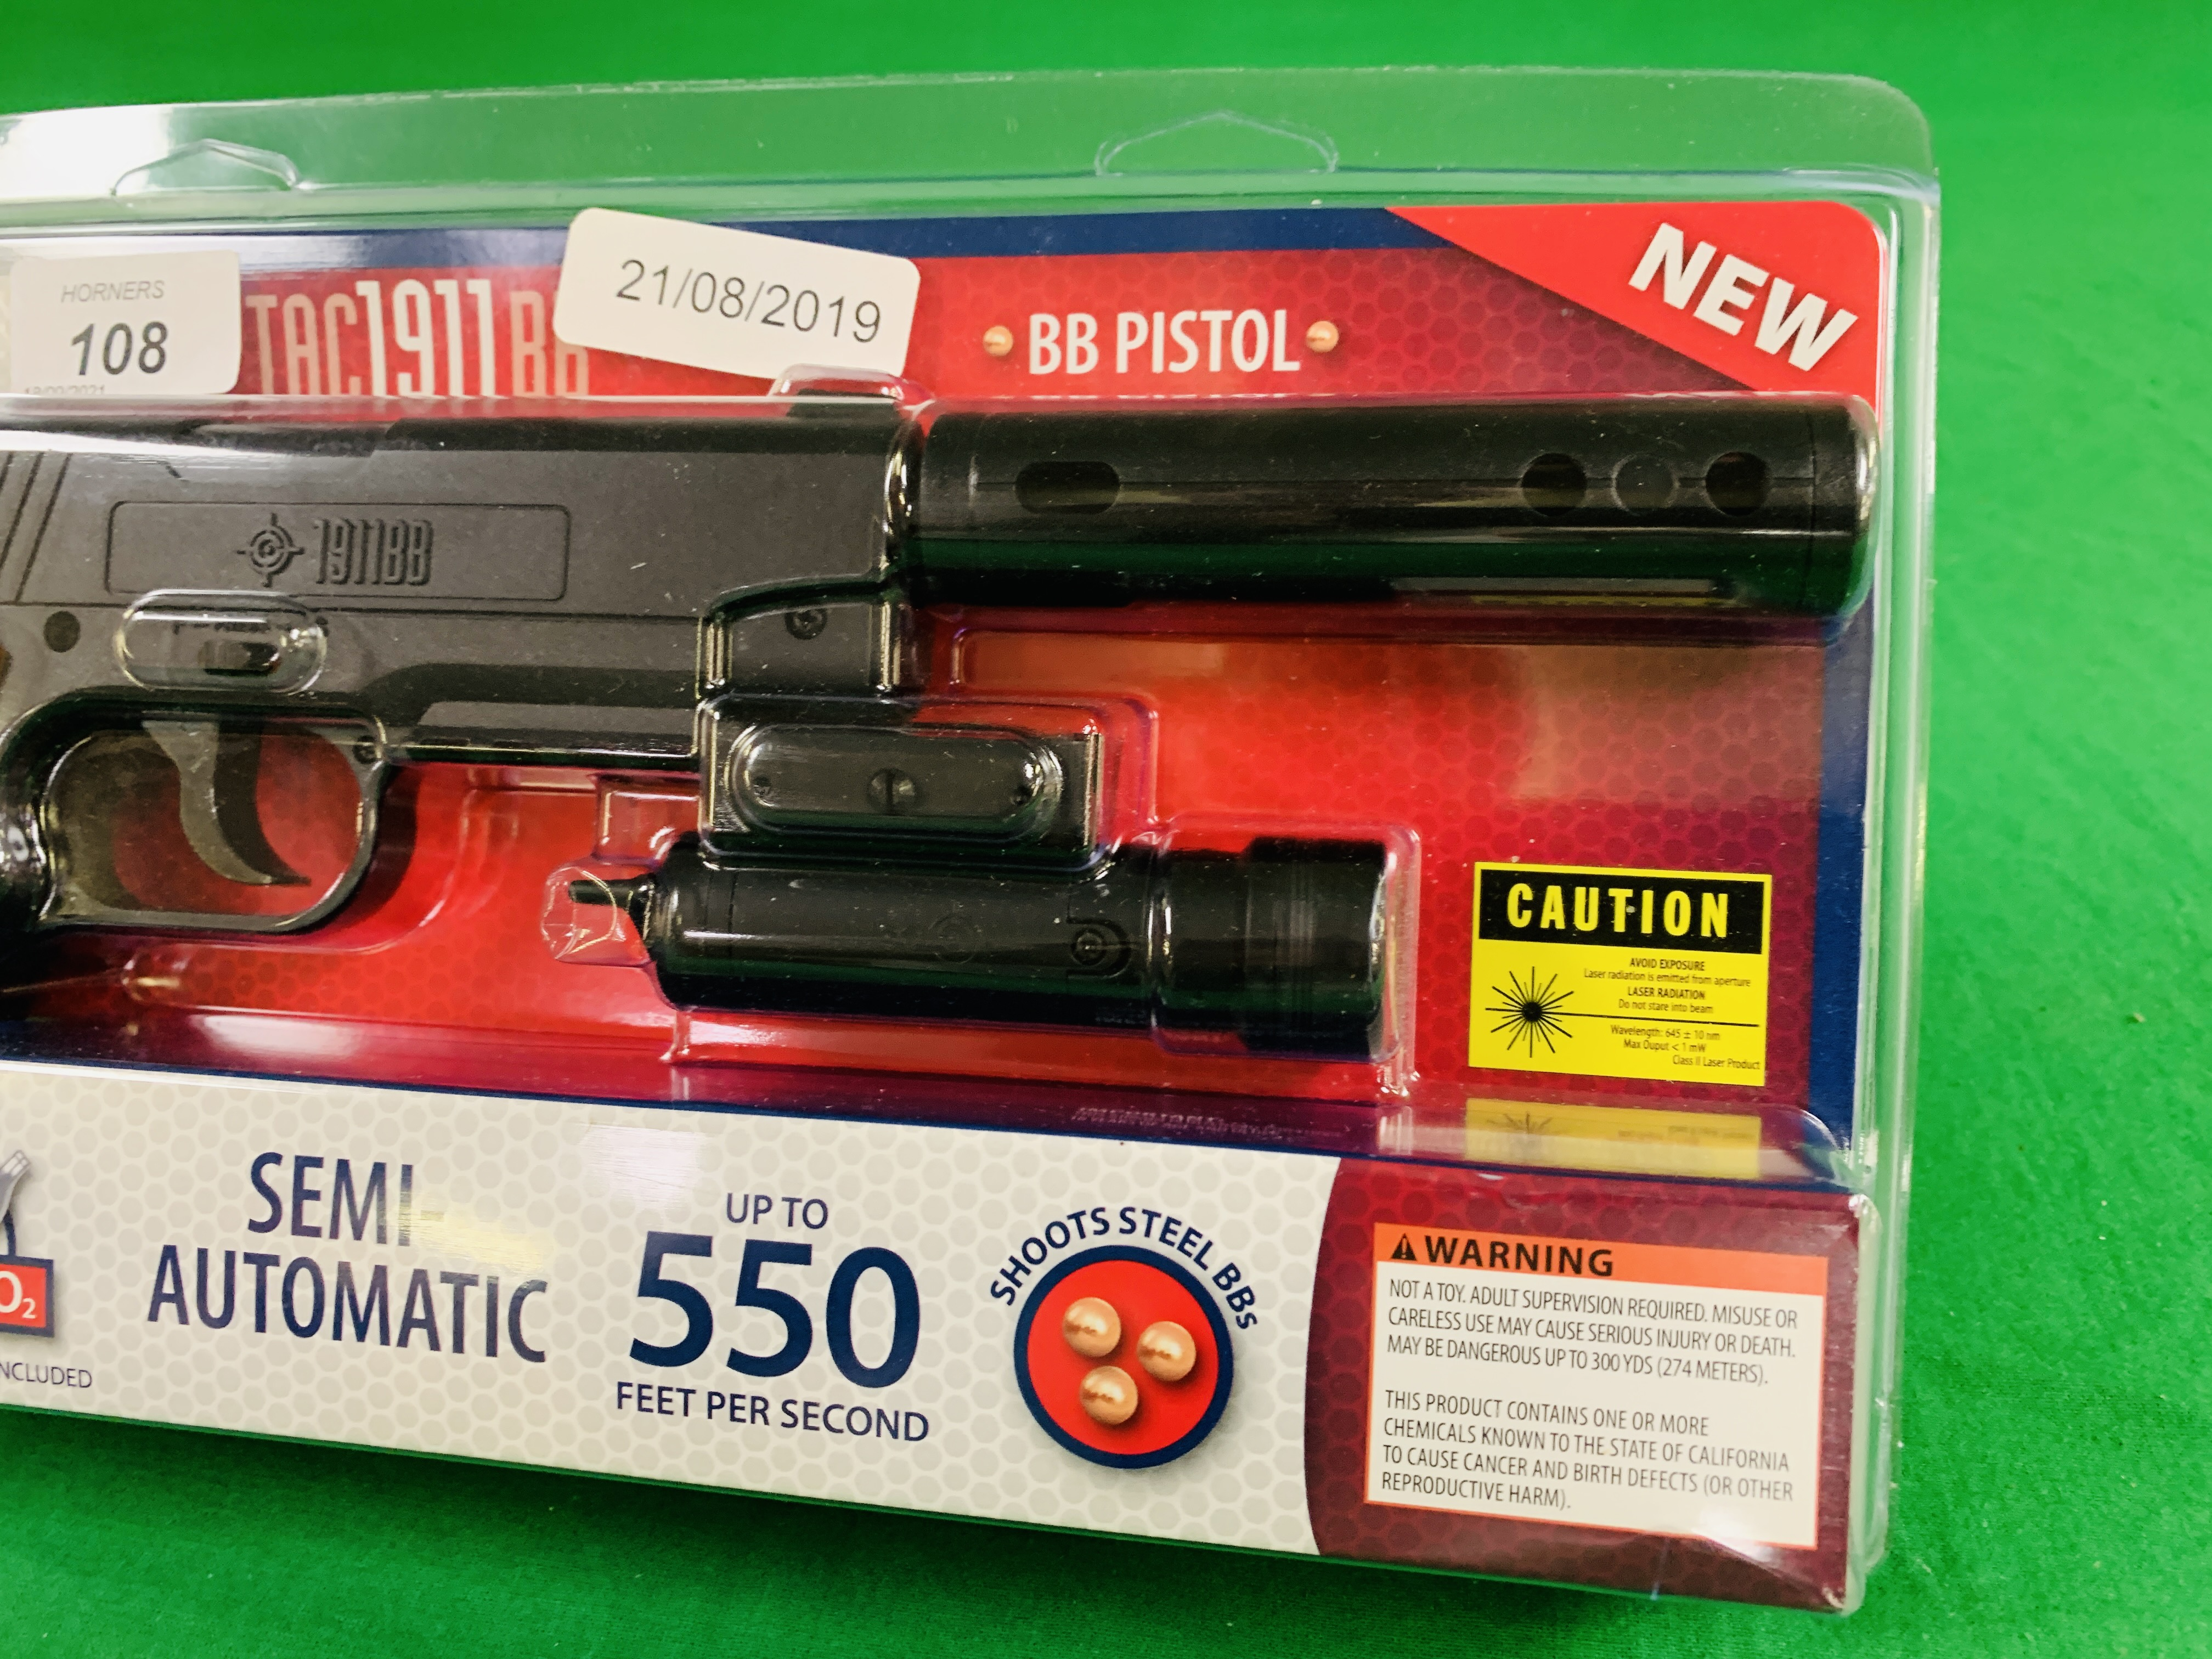 A CROSSMAN TAC SEMI-AUTOMATIC 1911 BB CO² AIR PISTOL WITH LASER BOXED AS NEW - (ALL GUNS TO BE - Image 3 of 4